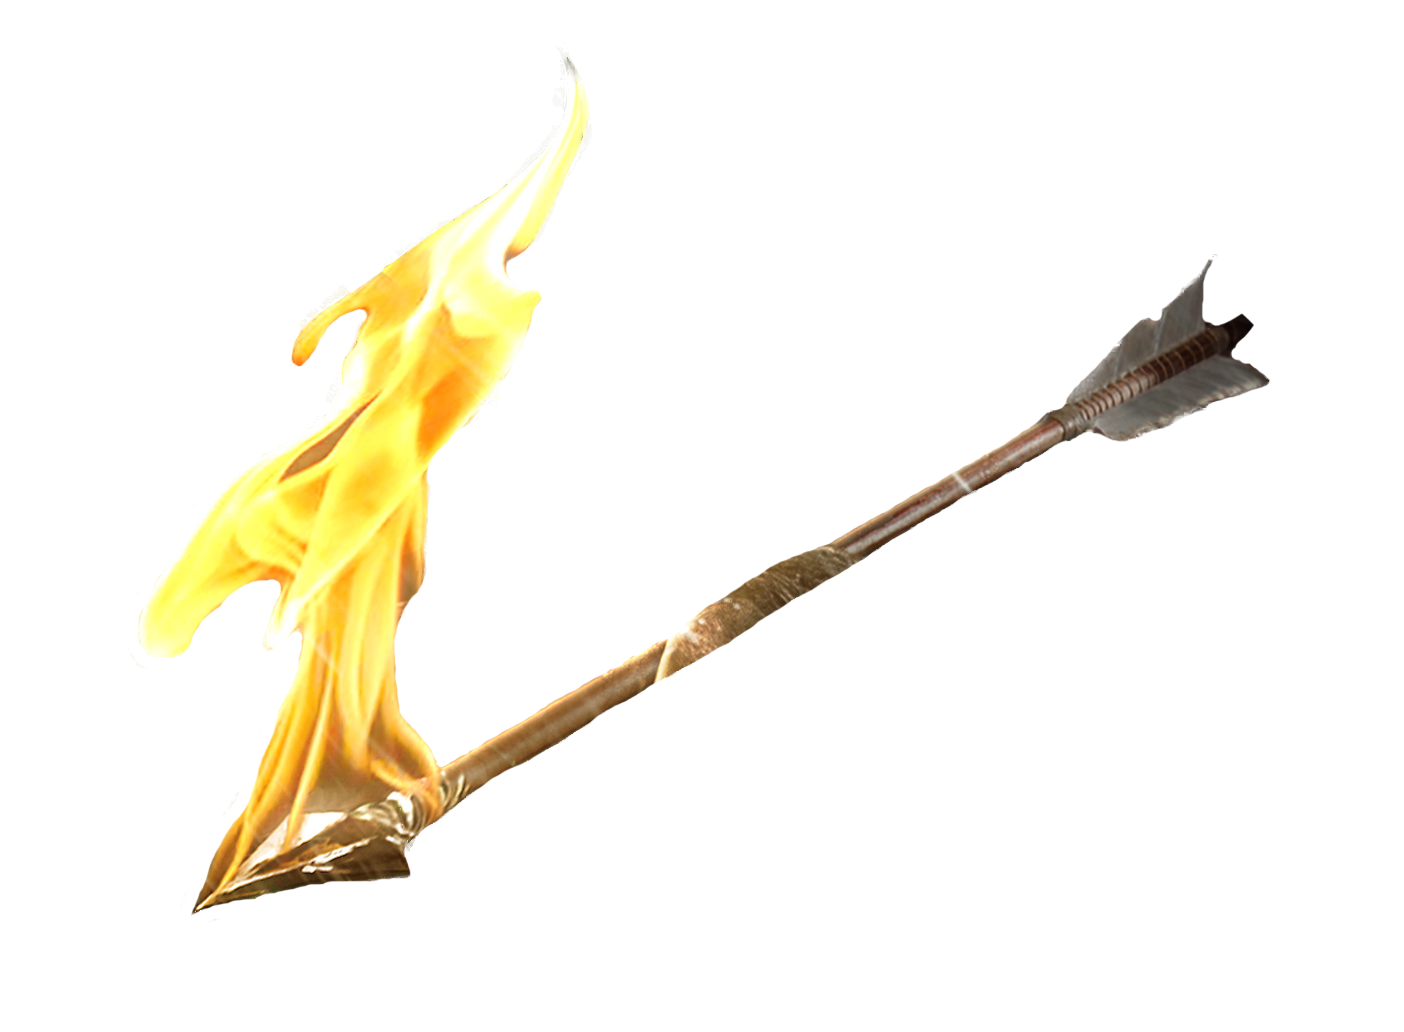 Fire Arrow Png Arrow Image Black Background Images Background Images Hd